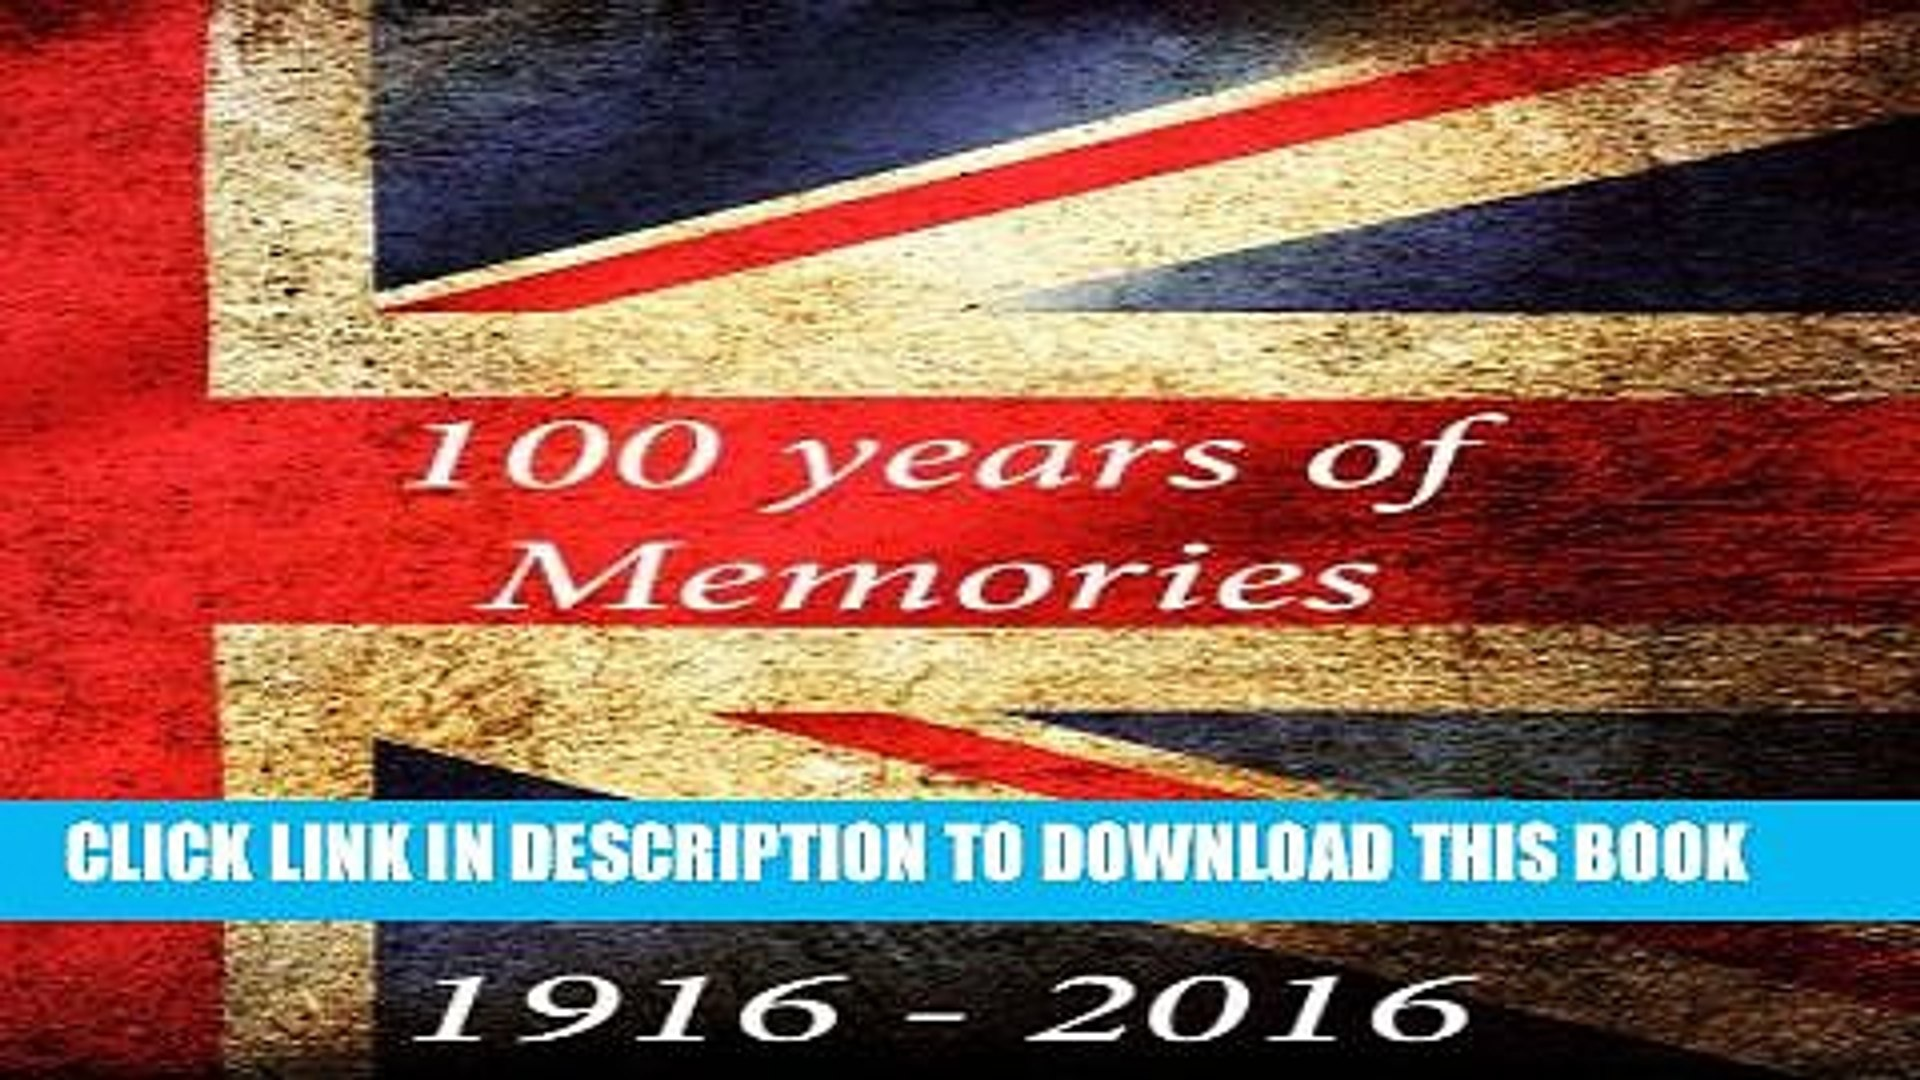 [PDF] 100 years of memories: 100 years of memories from 1916 to 2016 on every decade starting from